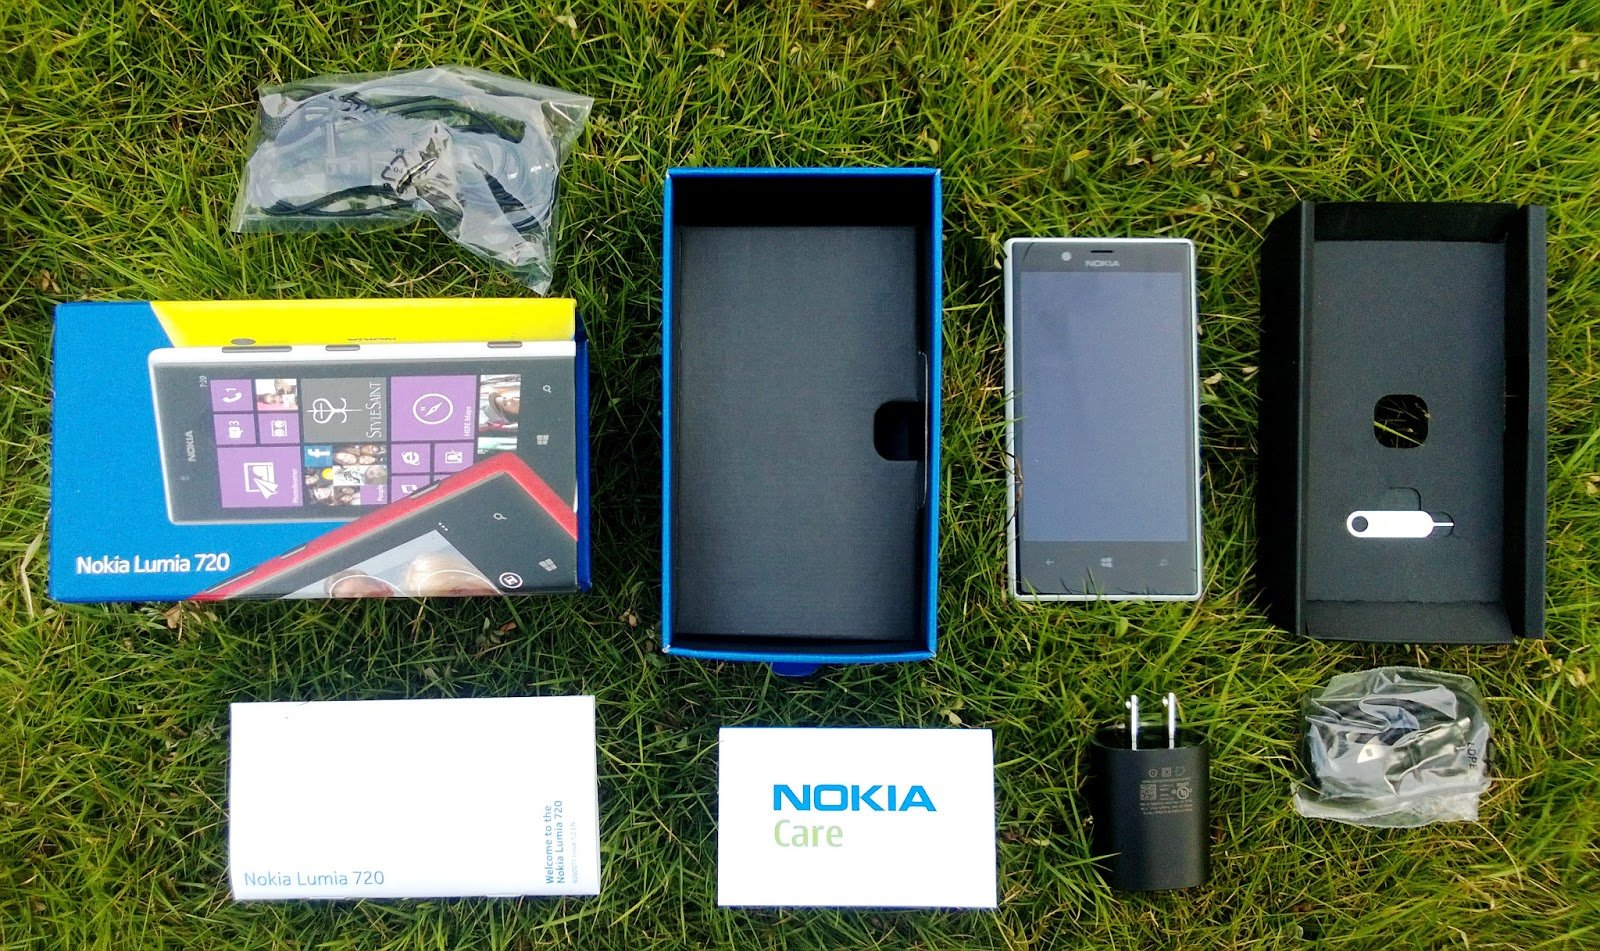 Nokia Lumia 720 Out Of The Box.jpg